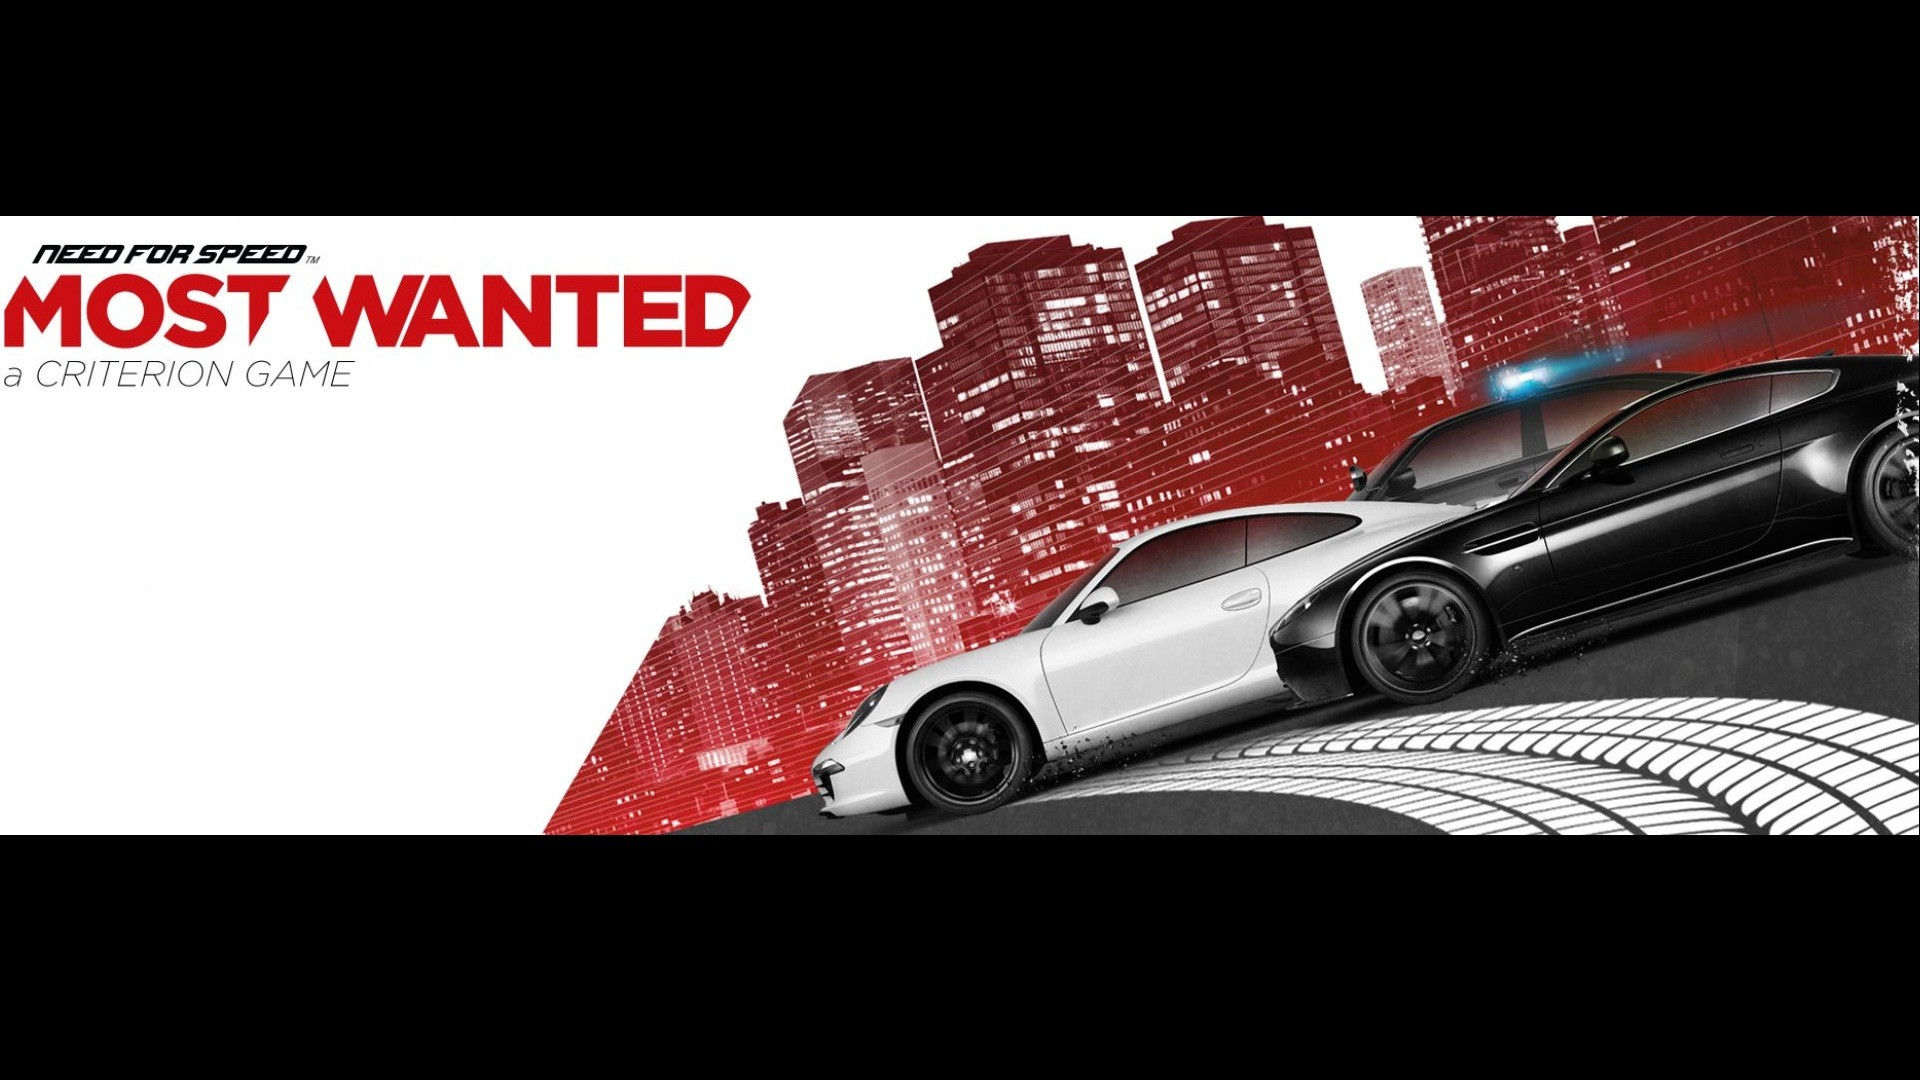 1920x1080 nfs most wanted 3